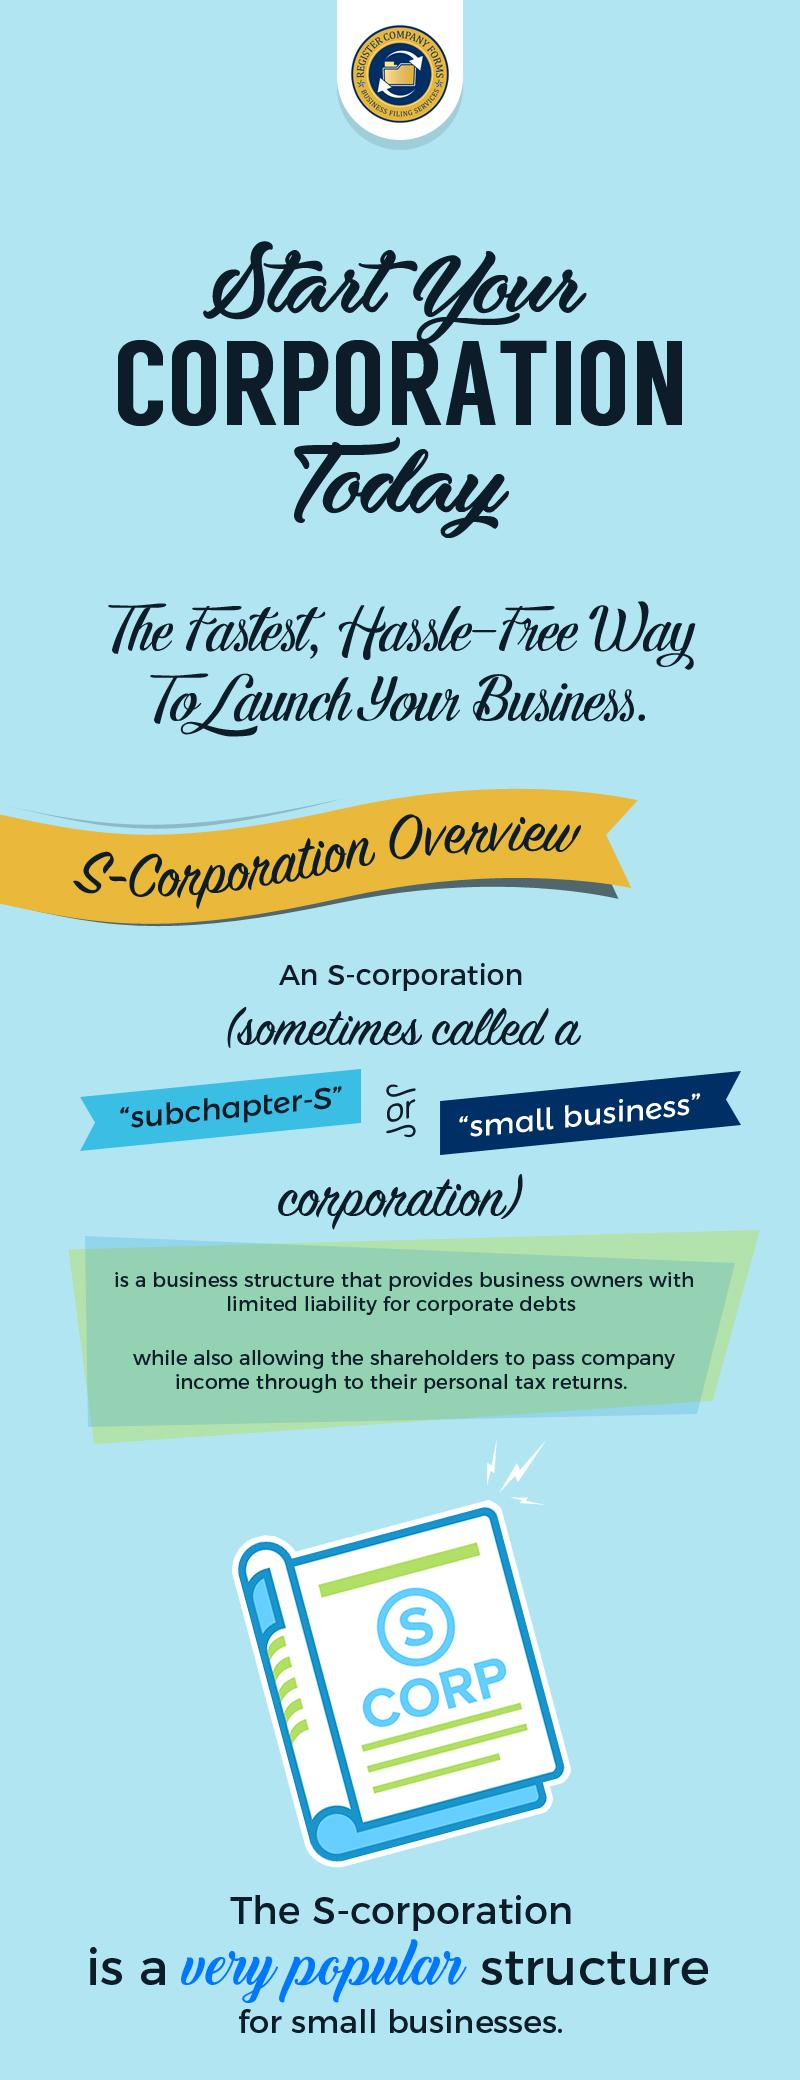 S-corporation - A Very Popular Structure For Small Businesses